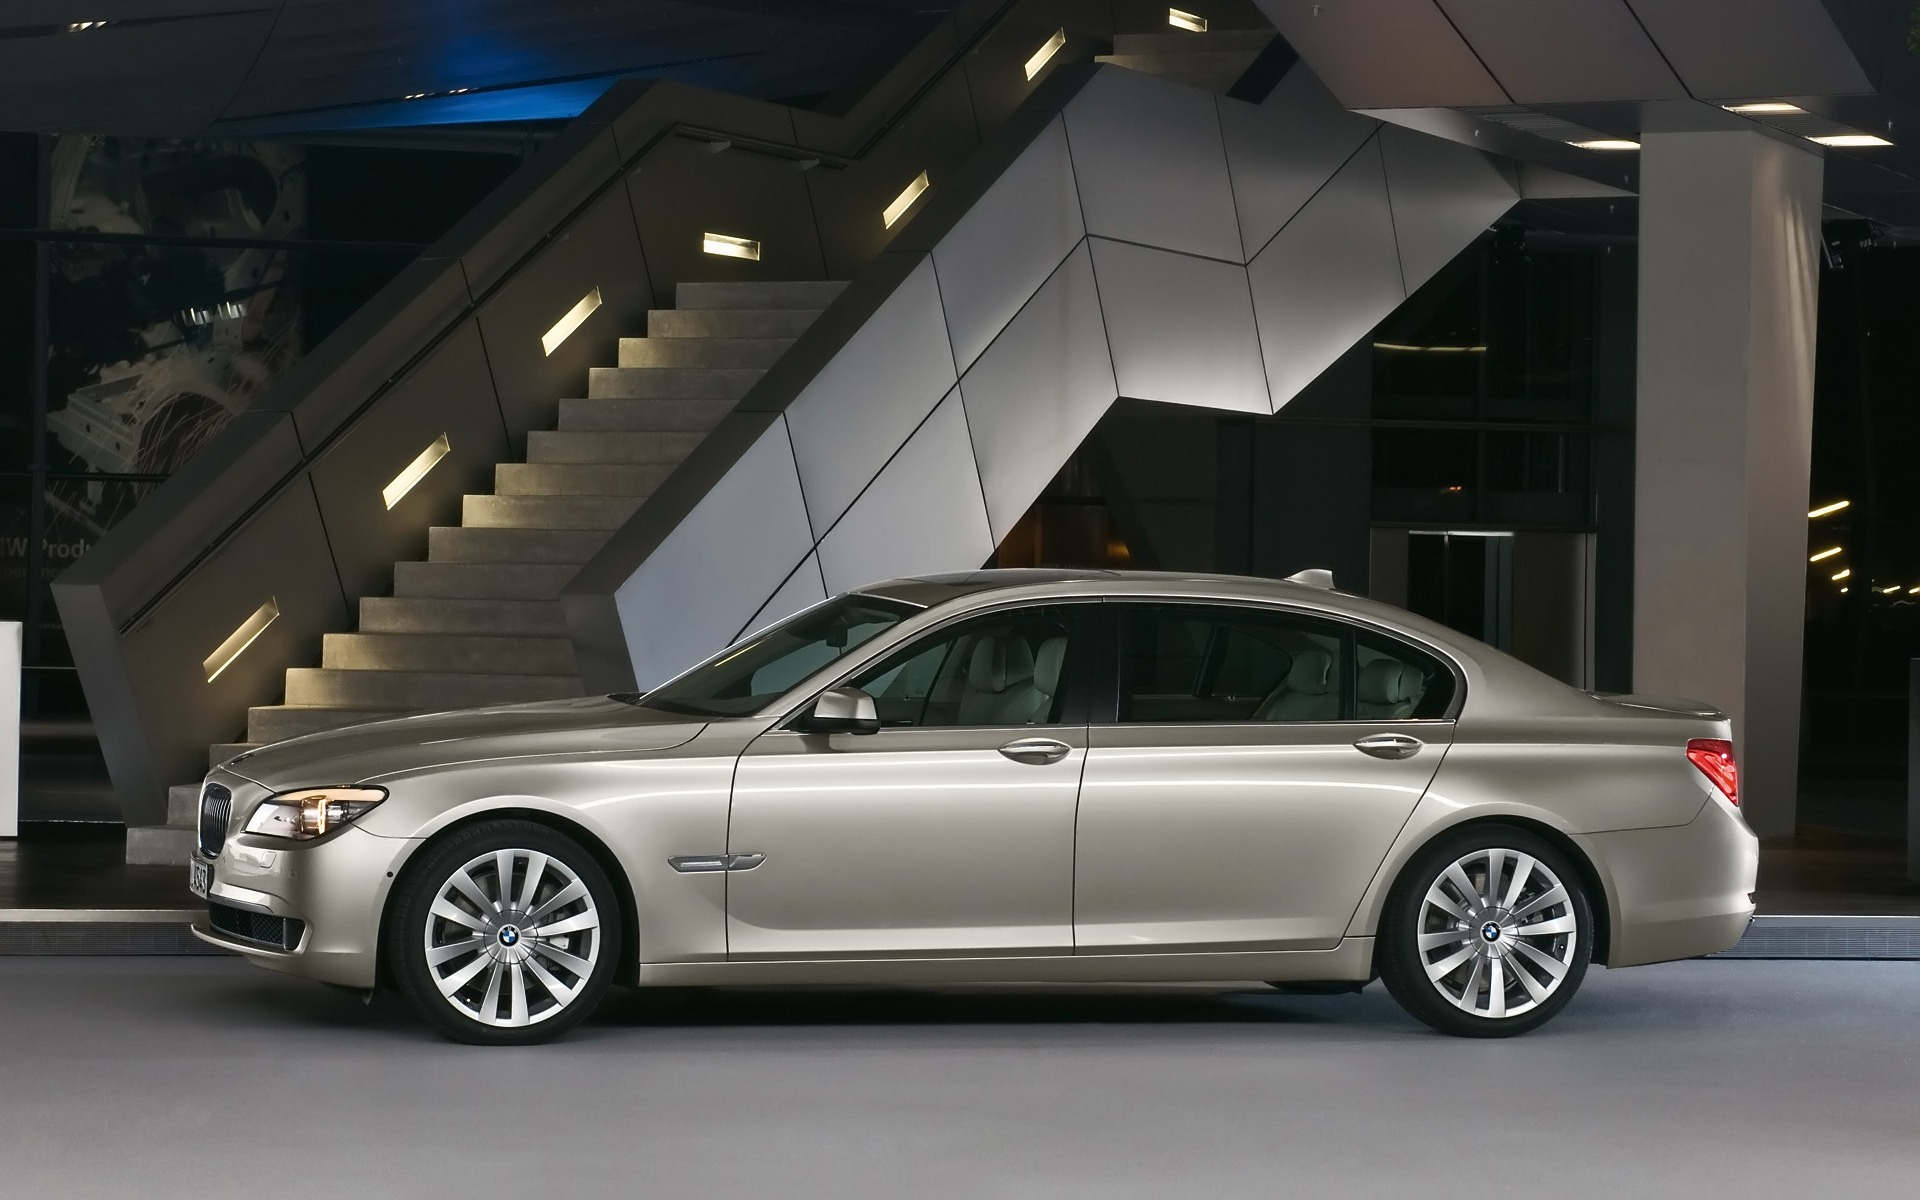 2009 BMW 7 Series Wallpaper BMW Cars Wallpapers in jpg format for ...